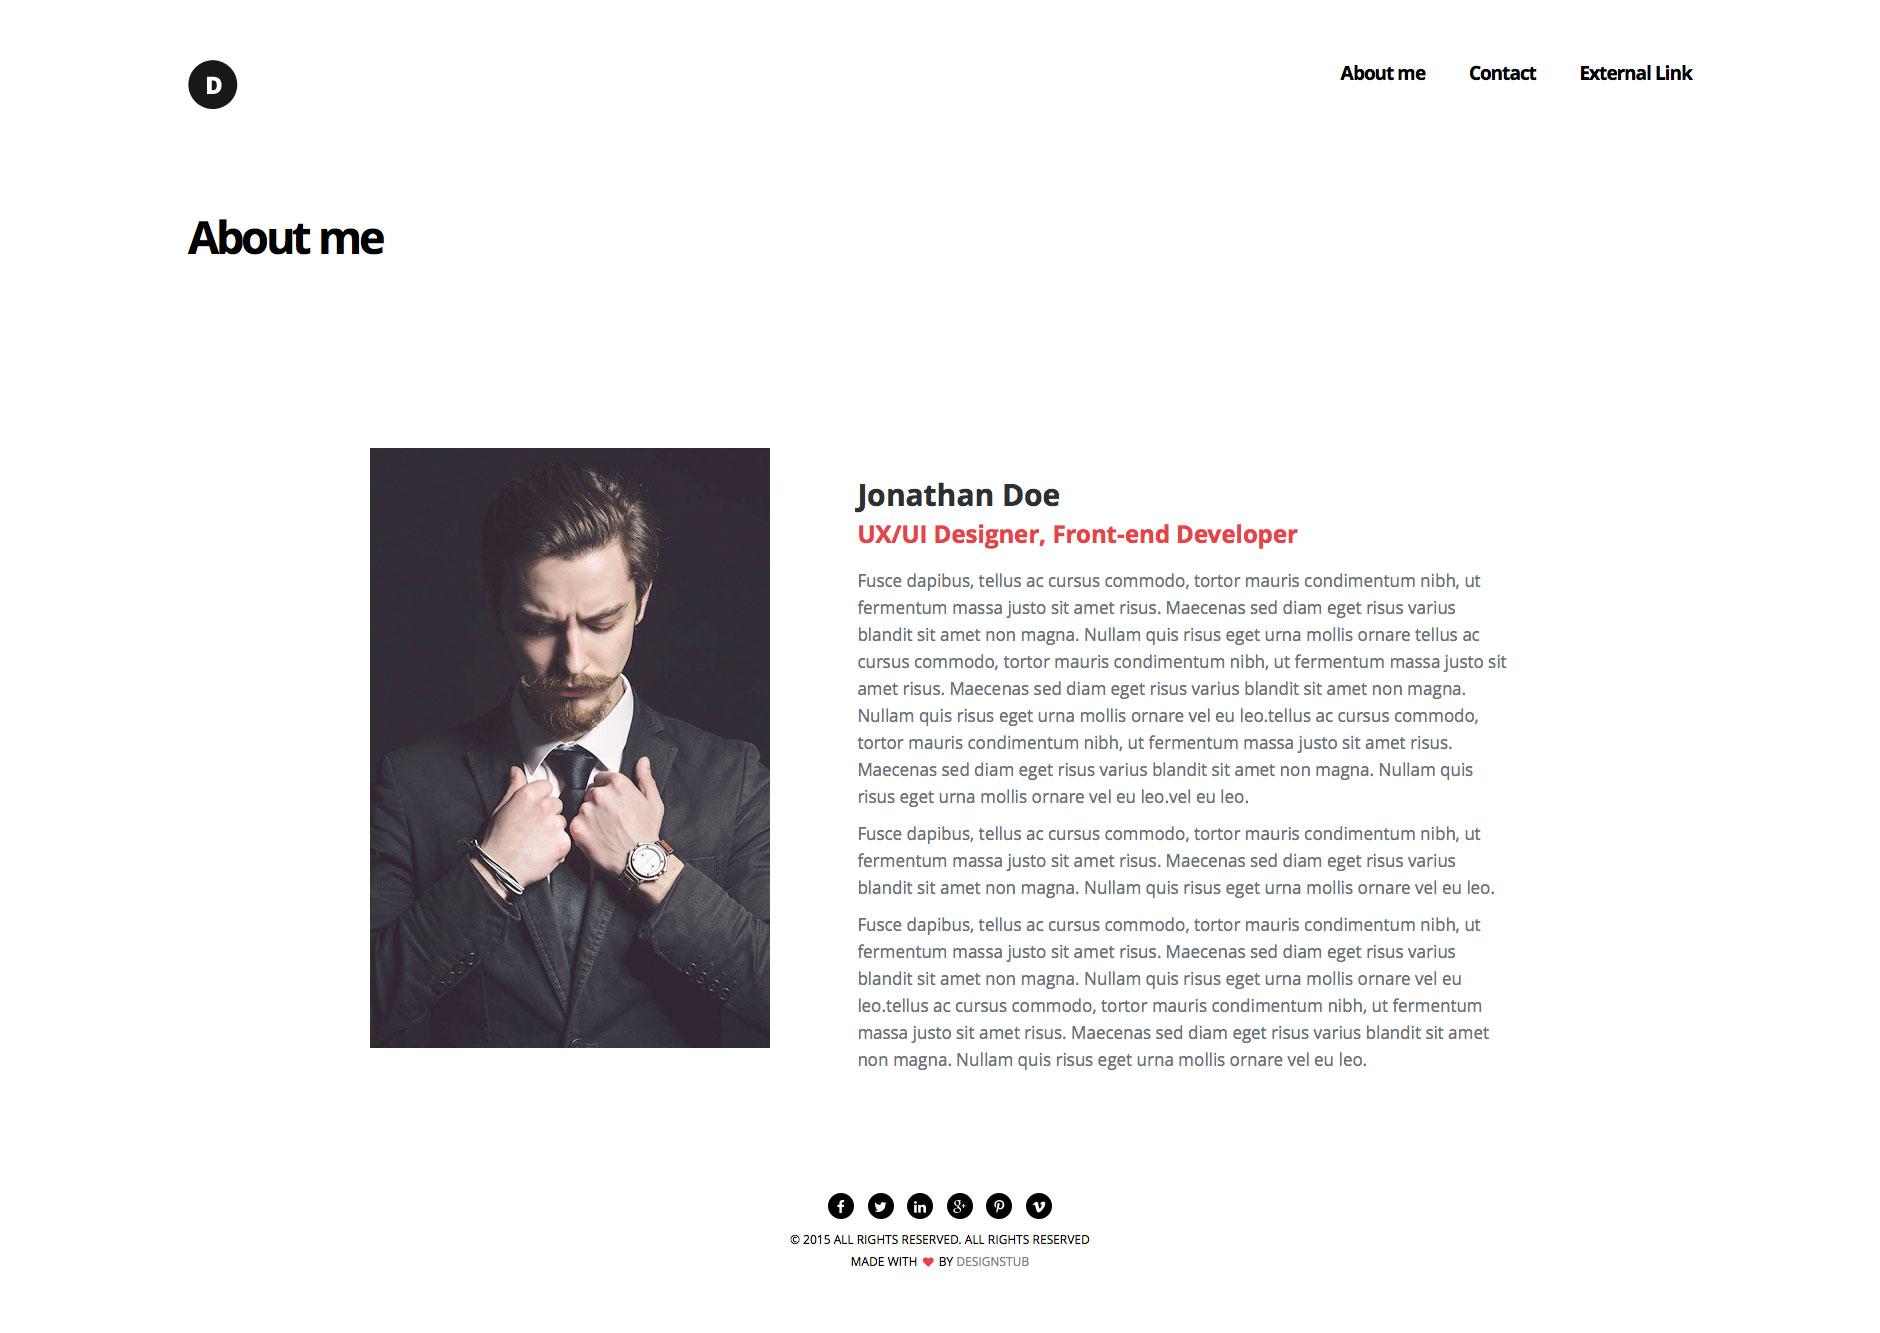 Dsign is a modern, elegant and minimalist HTML5 template for designers. The perfect web template for portfolio websites. This HTML5 template is fully responsive and based on the popular Bootstrap framework.